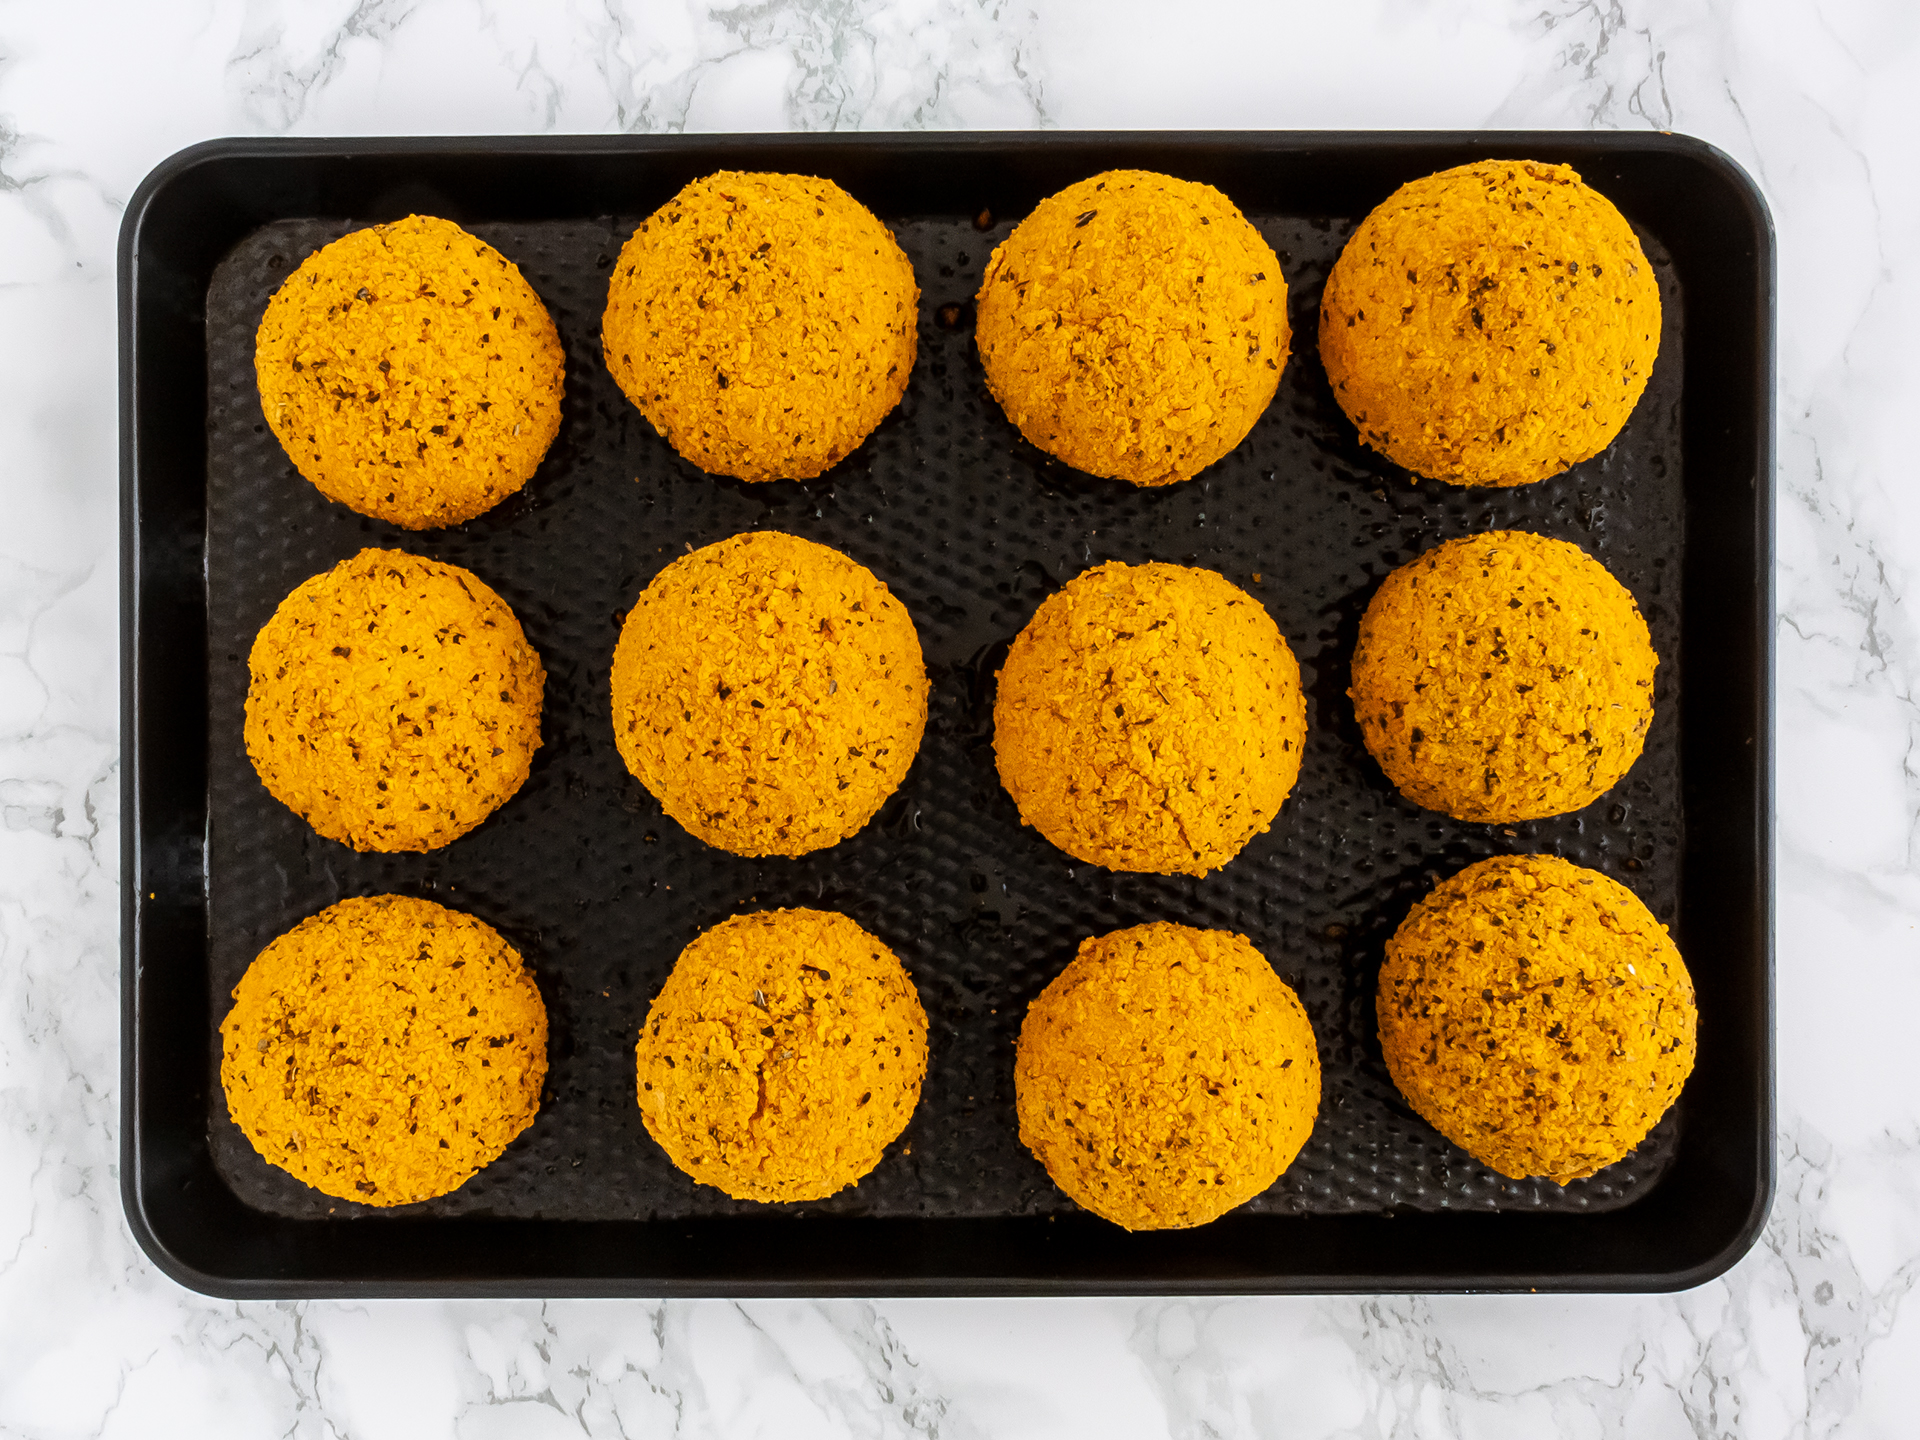 Arancini baked in the oven.